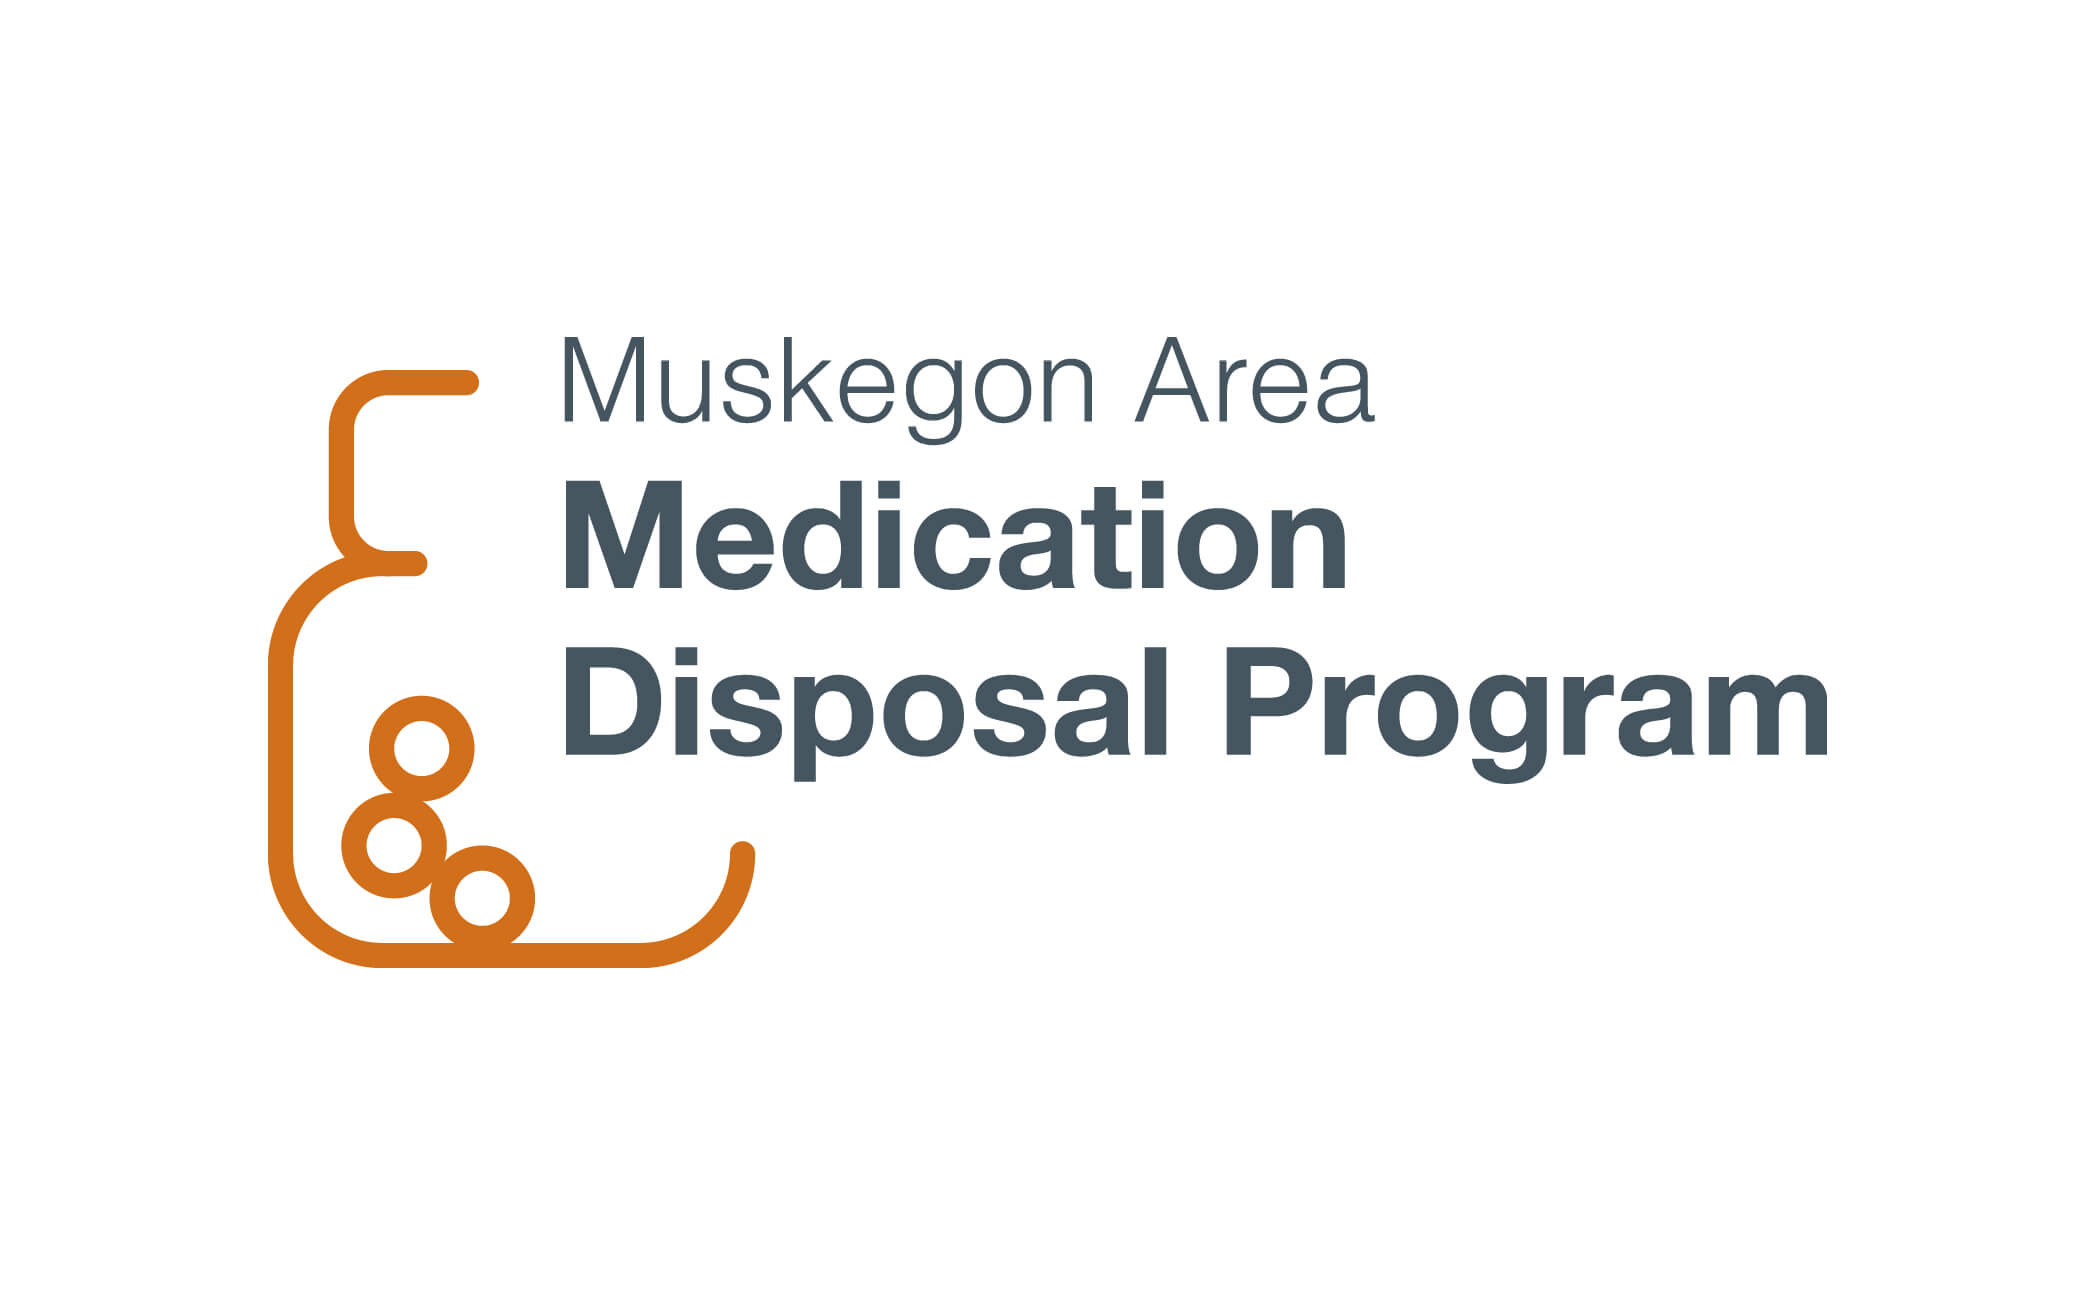 Muskegon Area Medication Disposal Program Logo Full Color